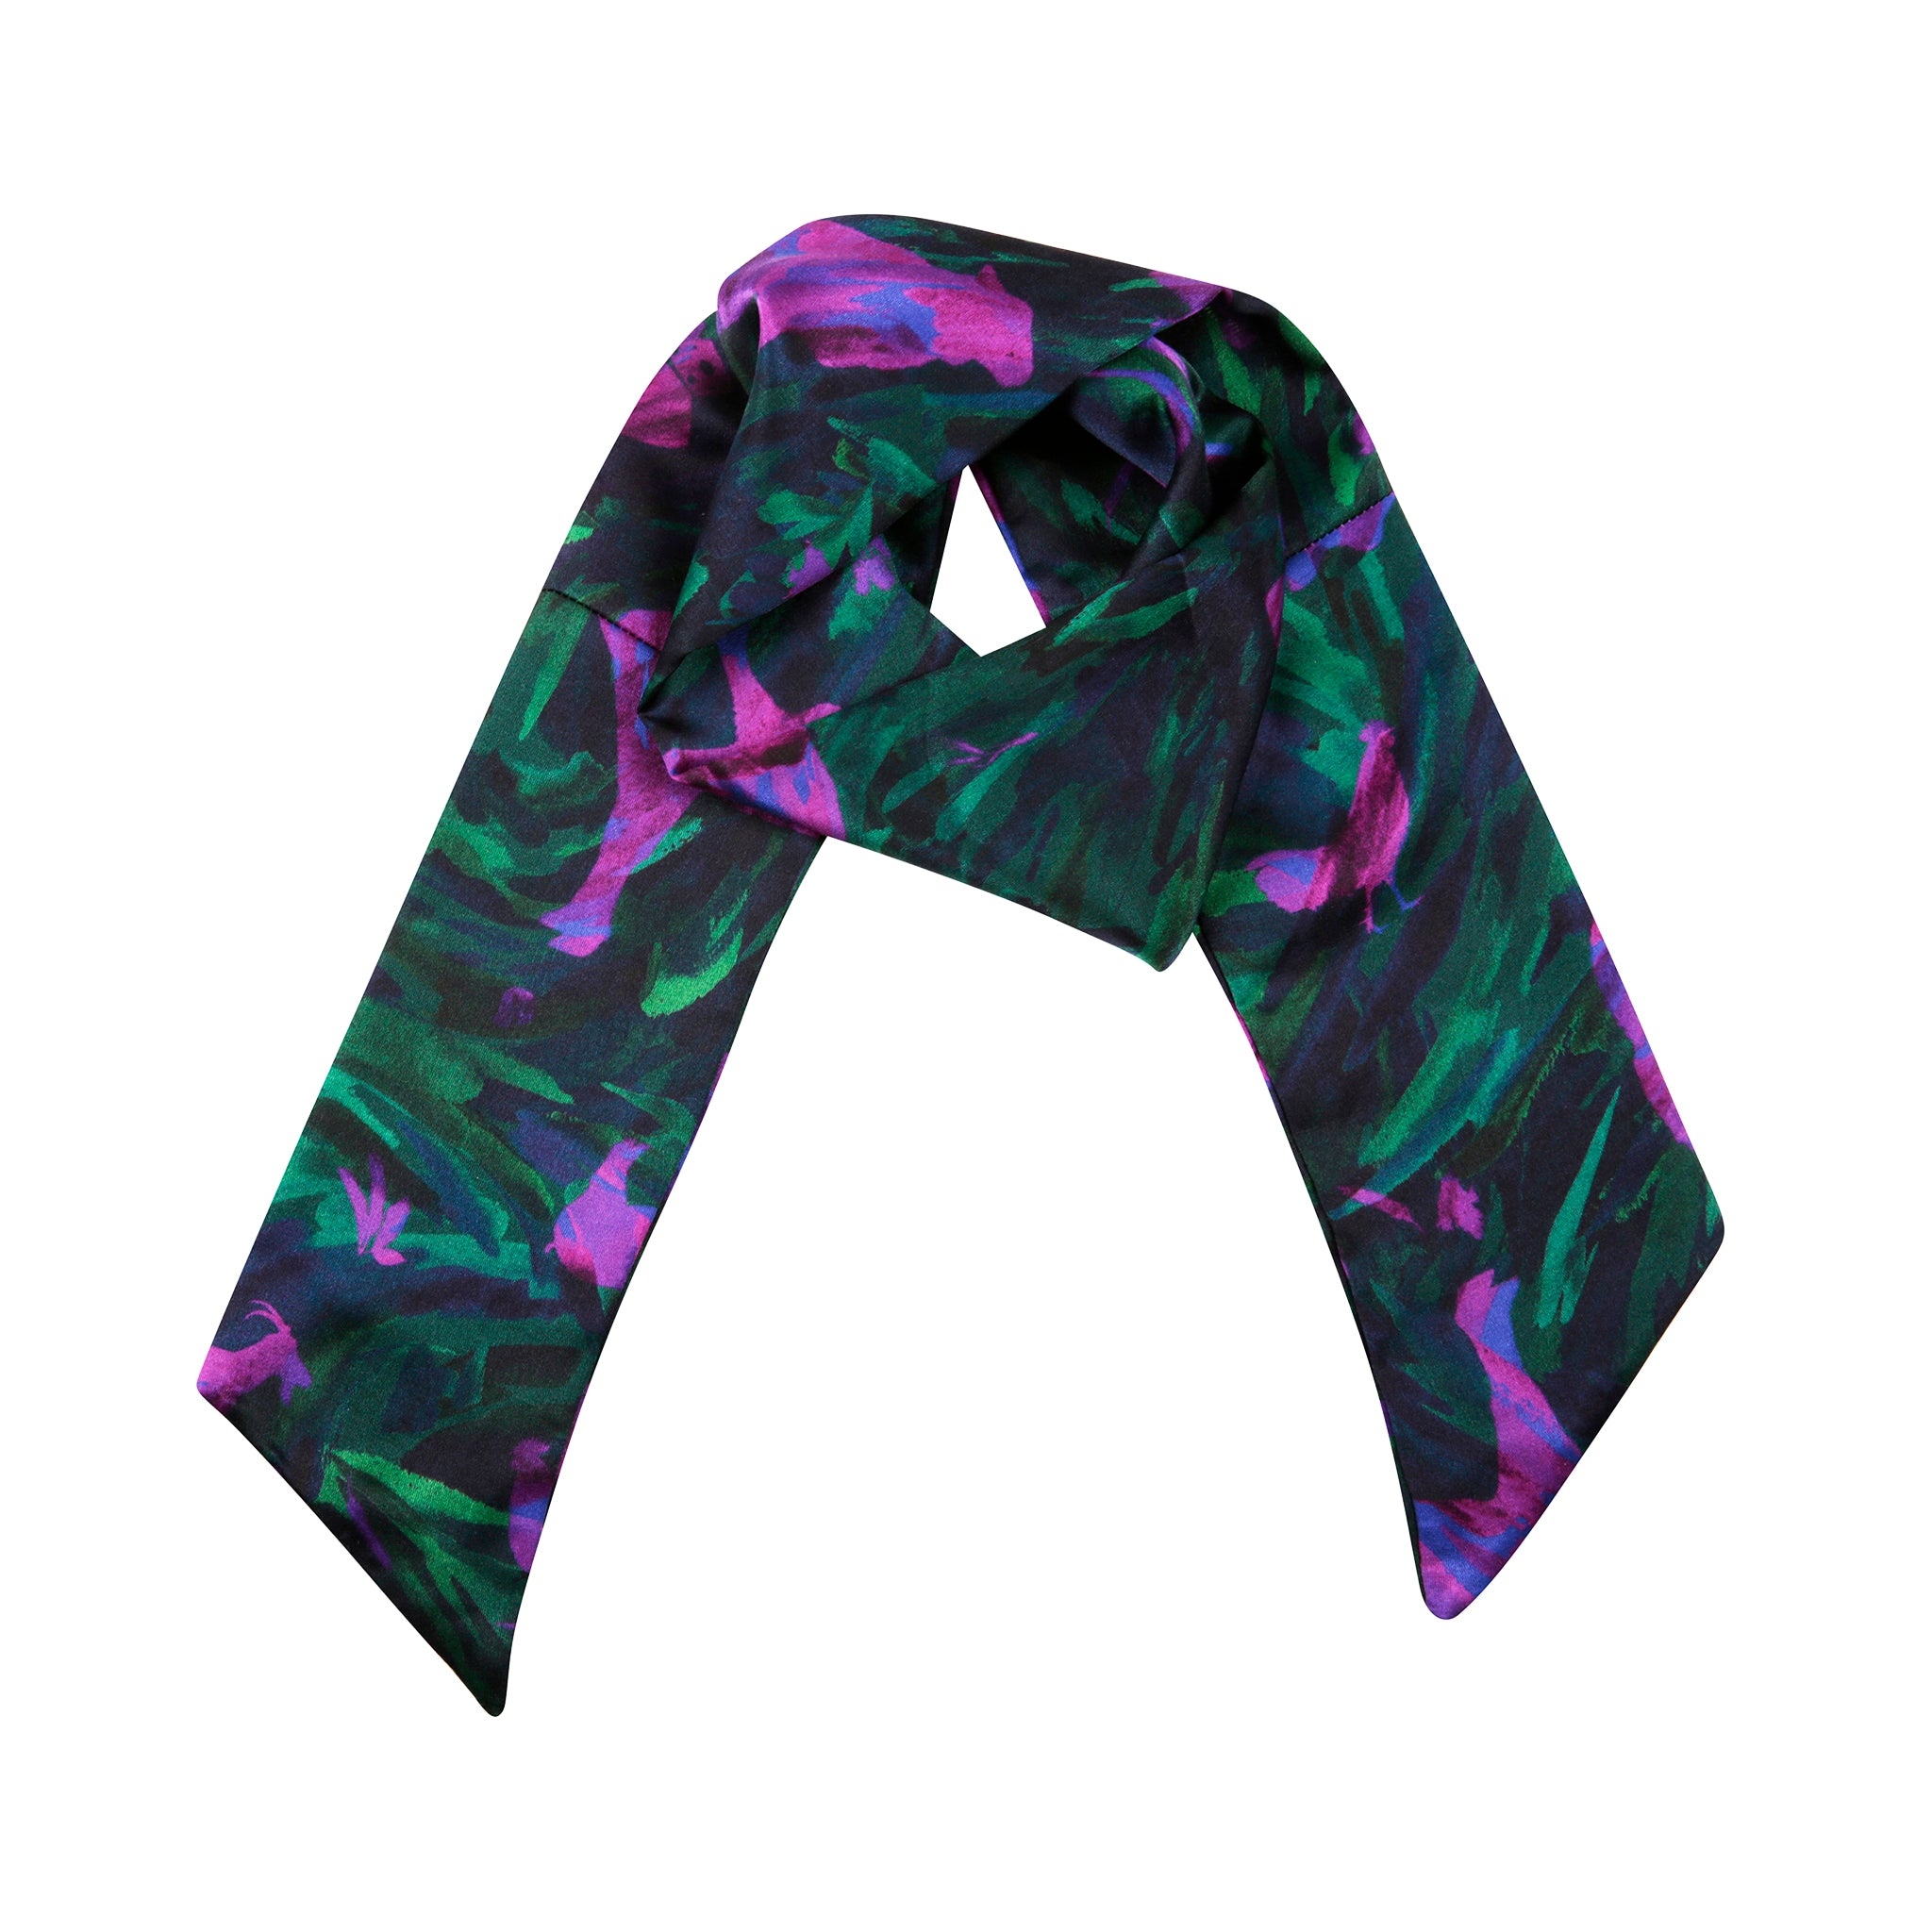 Water Neck Scarf in Green